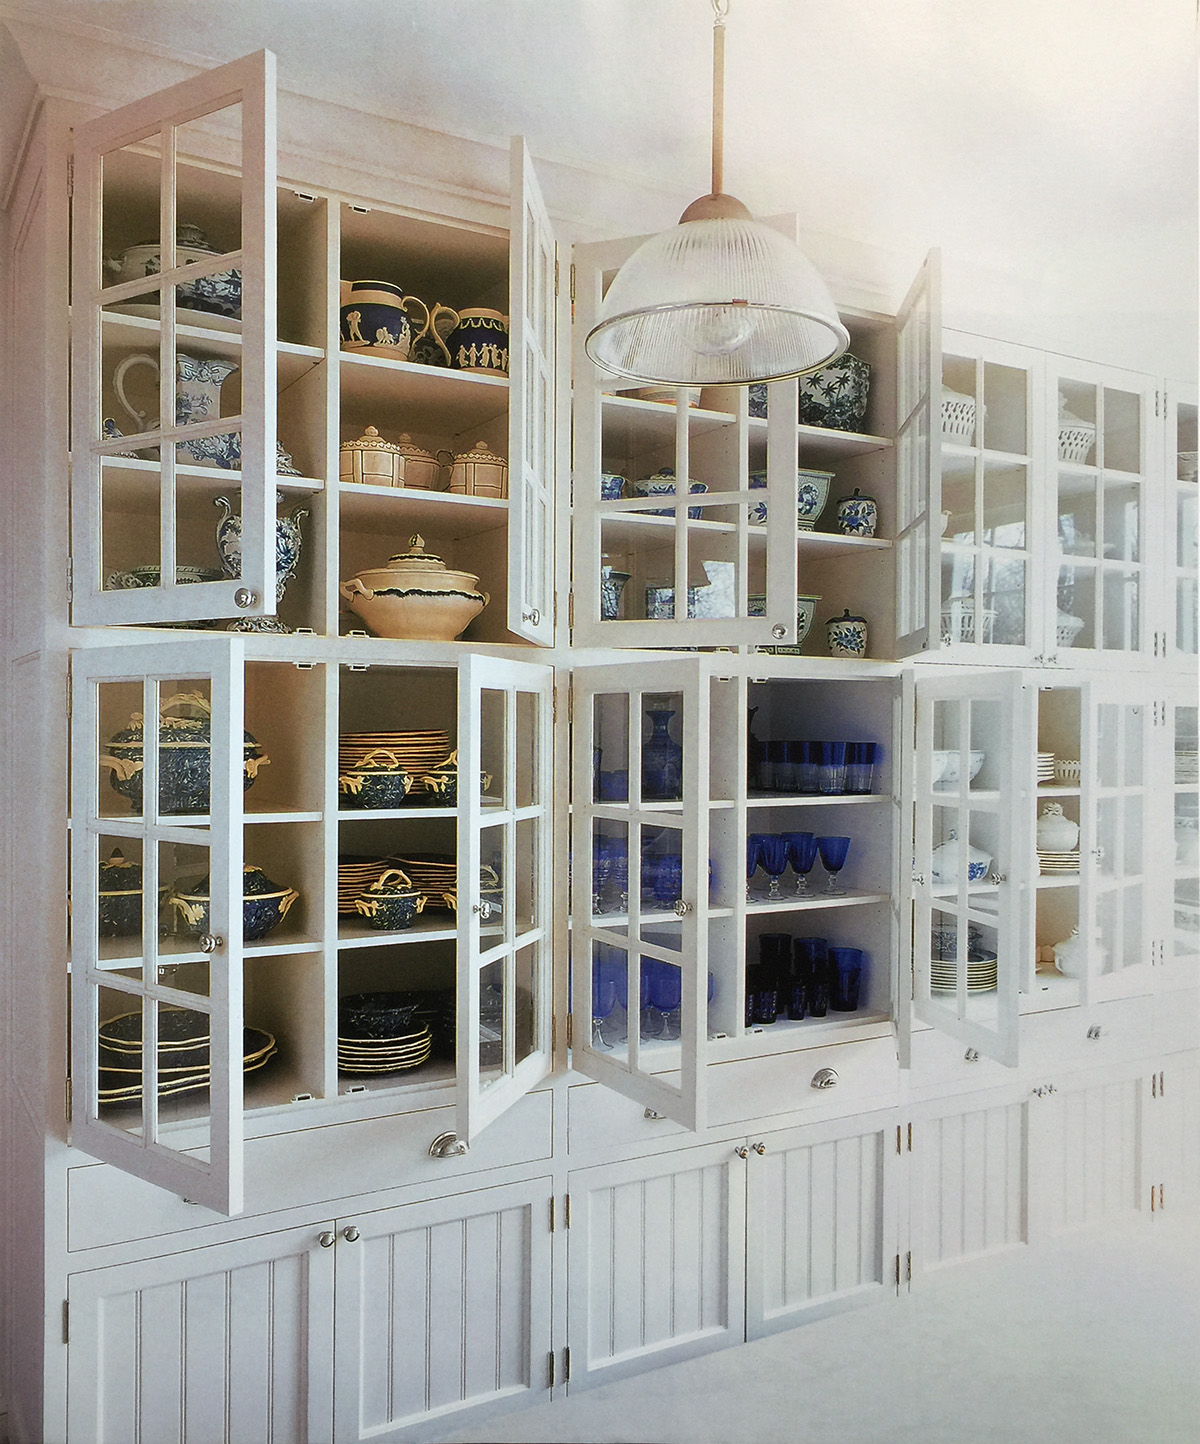 Carolyne Roehm's beadboard cabinets that house her extensive collection of blue and white porcelain, ceramics and glassware.